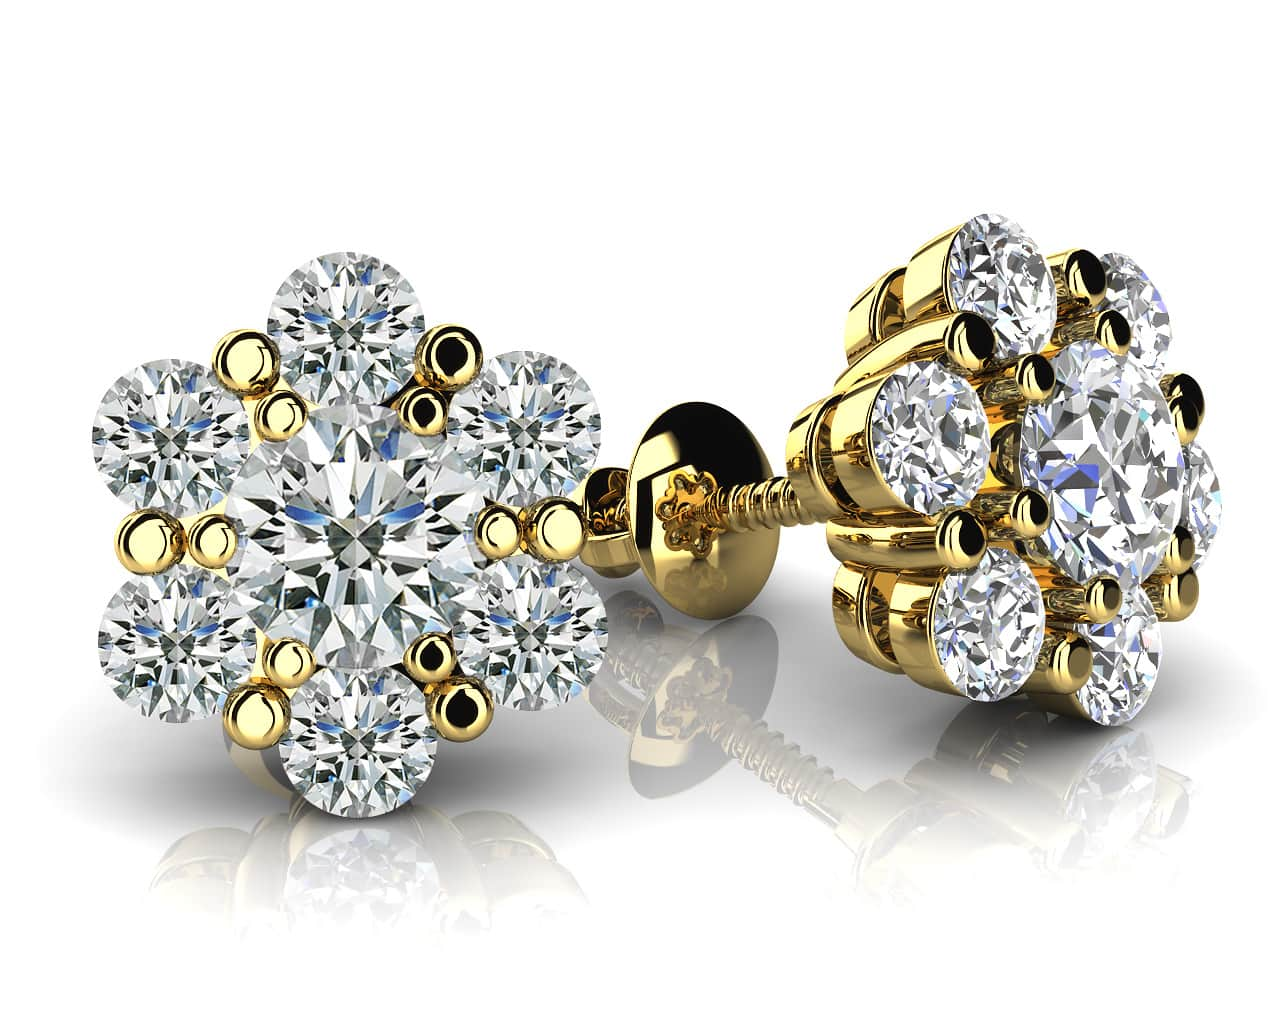 Flower Shaped Diamond Cluster Stud Earrings 1/2 Carat Total Weight